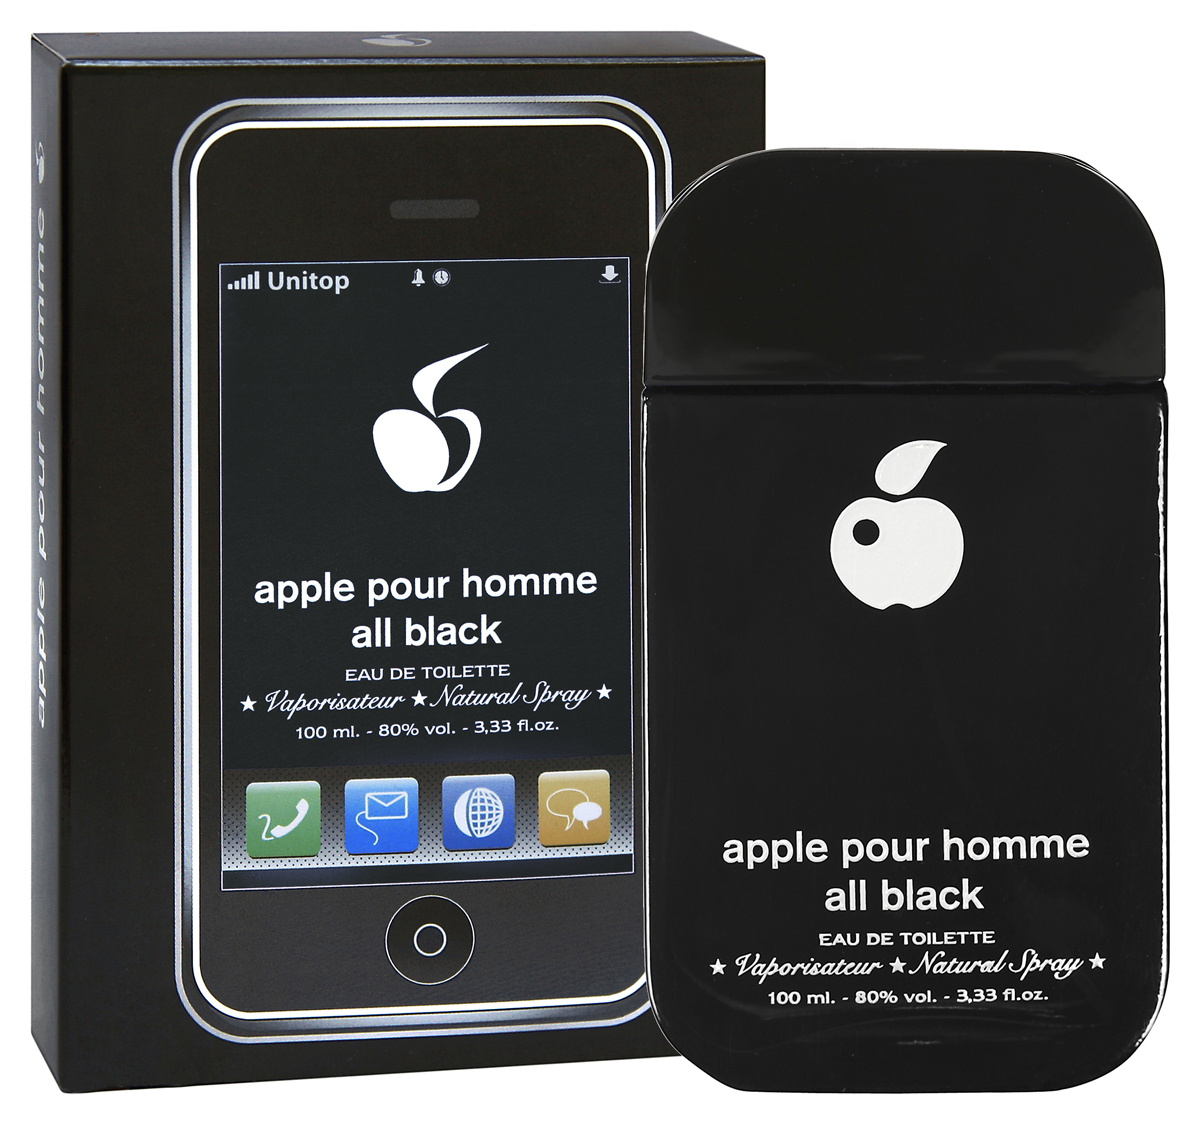 Apple Parfums Homme All Black. Туалетная вода, 100 мл туалетная вода apple parfums эппл пур хомме джаст силвер apple homme just silver